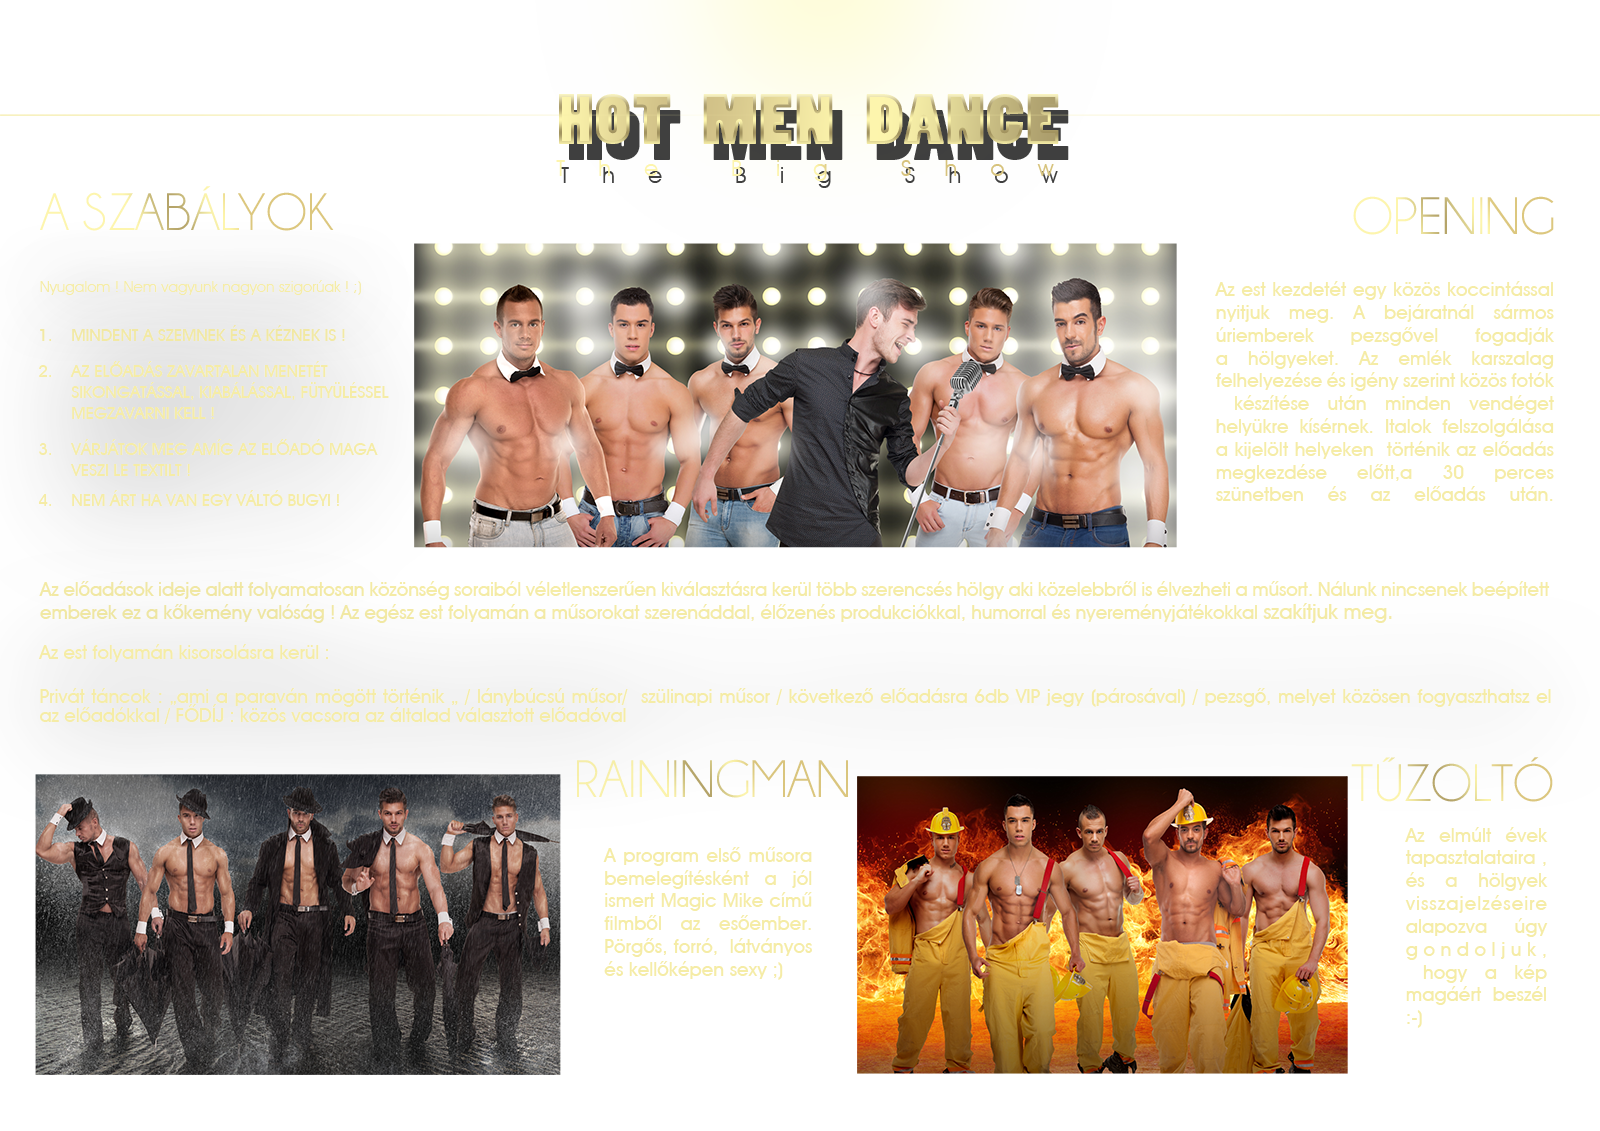 HOT MEN DANCE - THE BIG SHOW #1